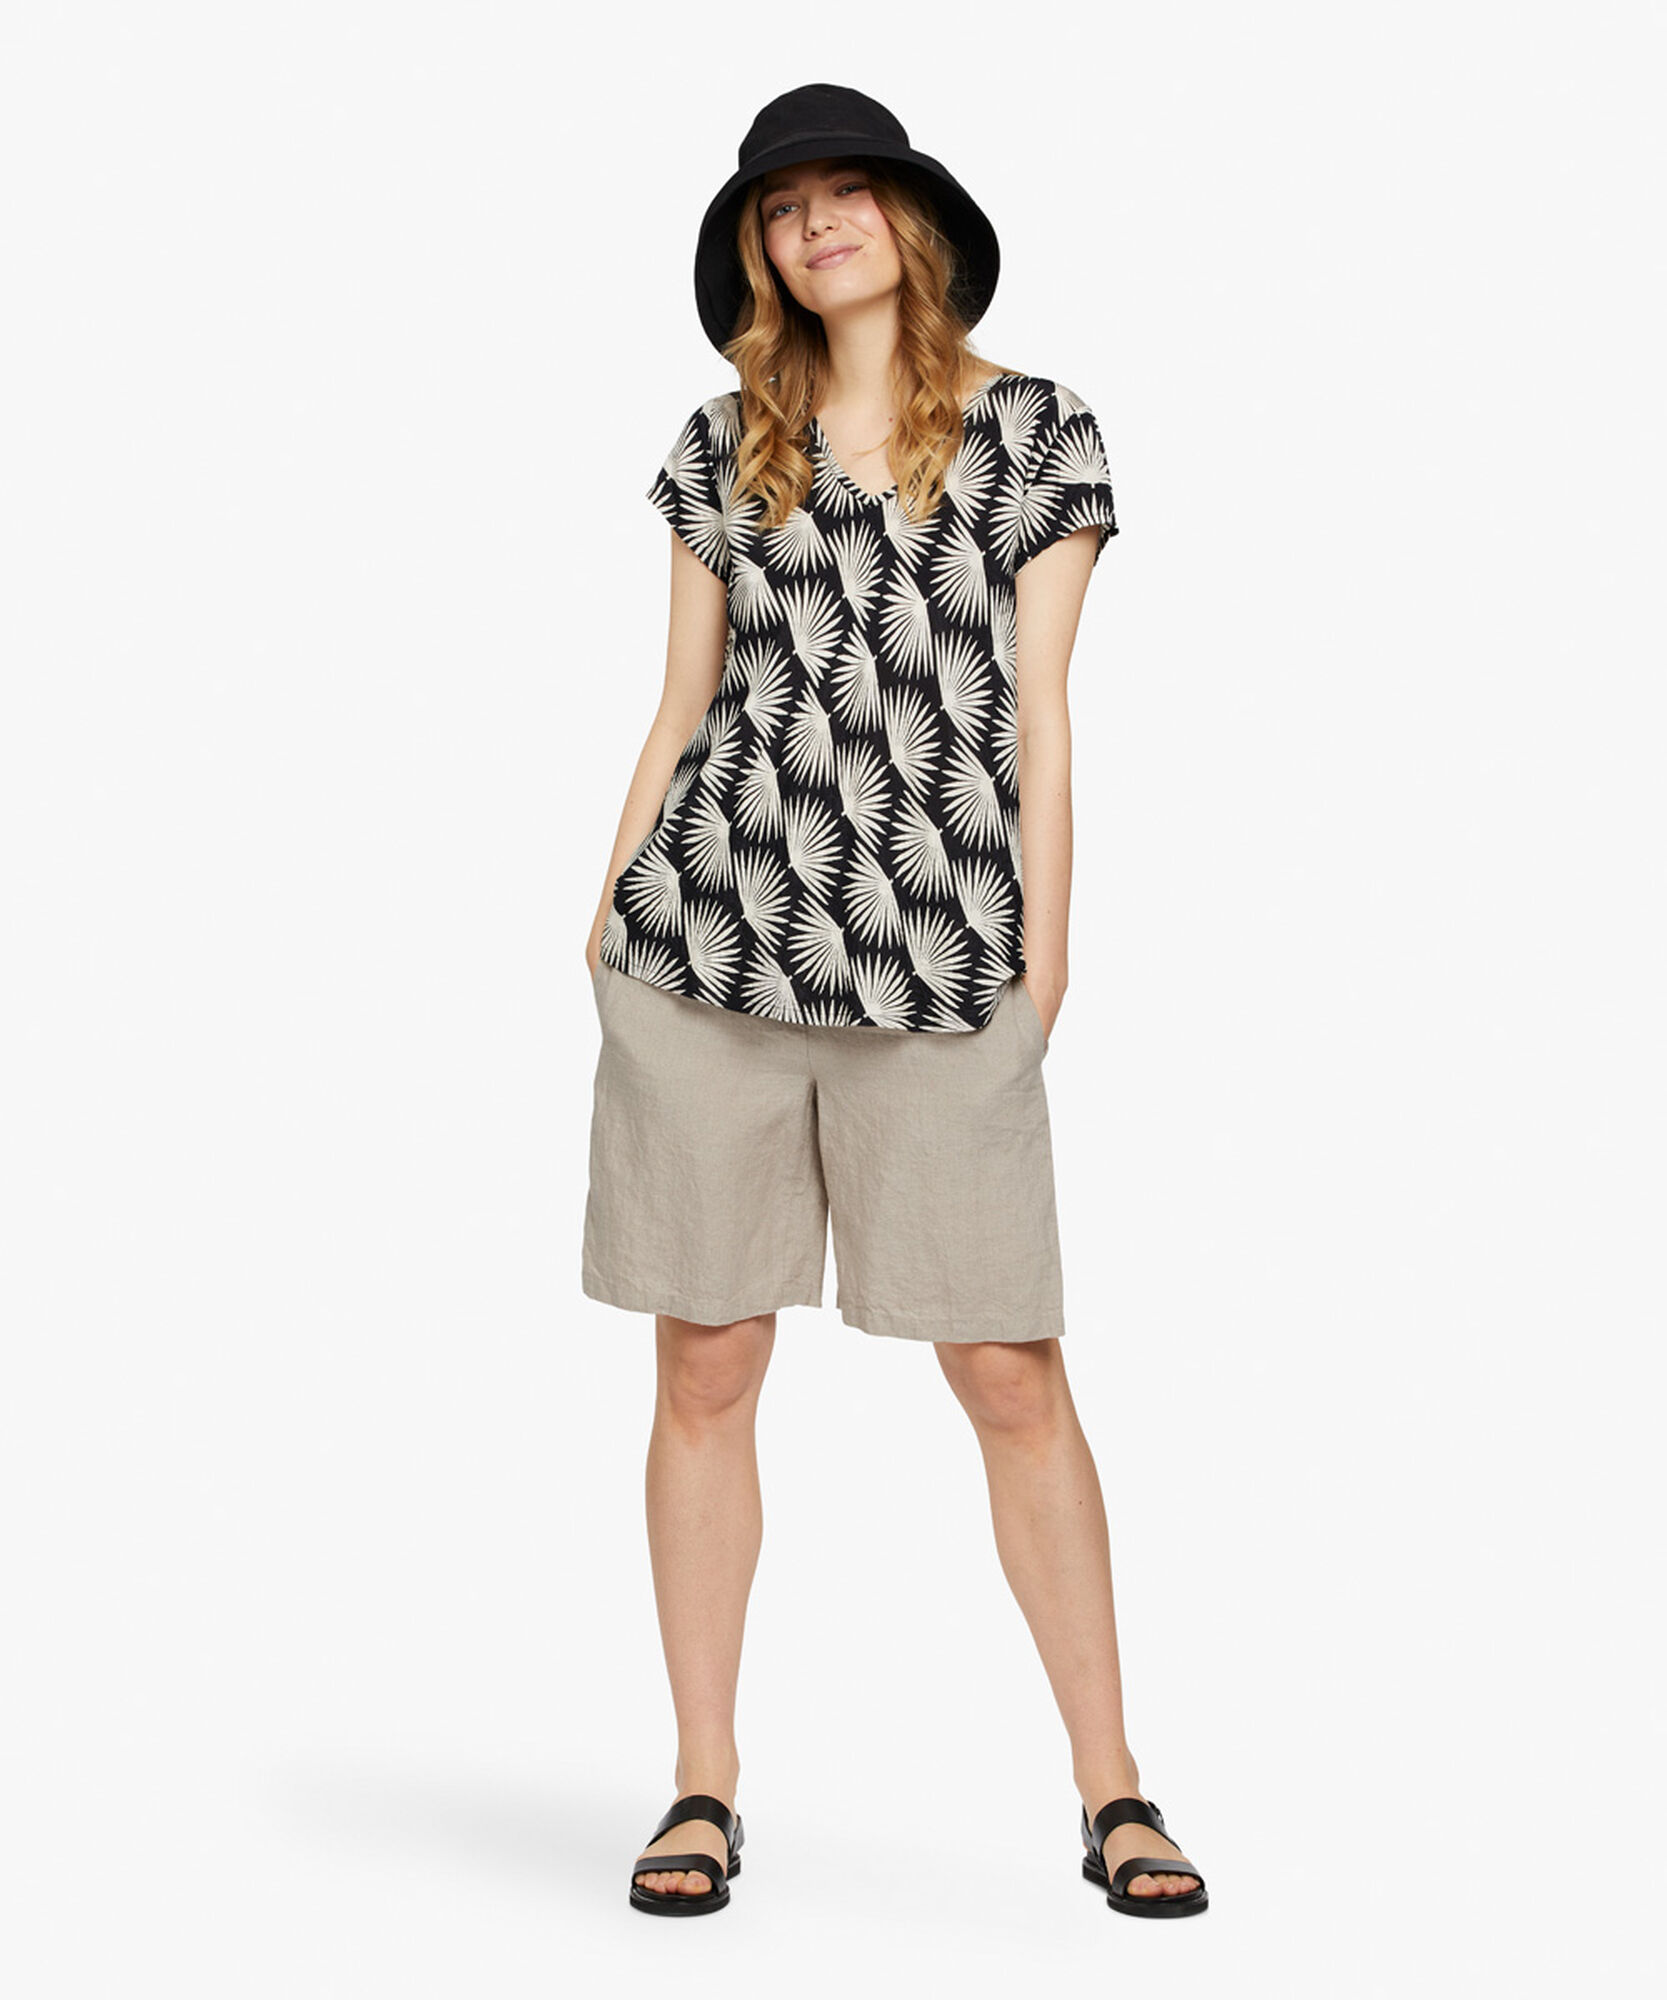 KALLO TOP, Black, hi-res